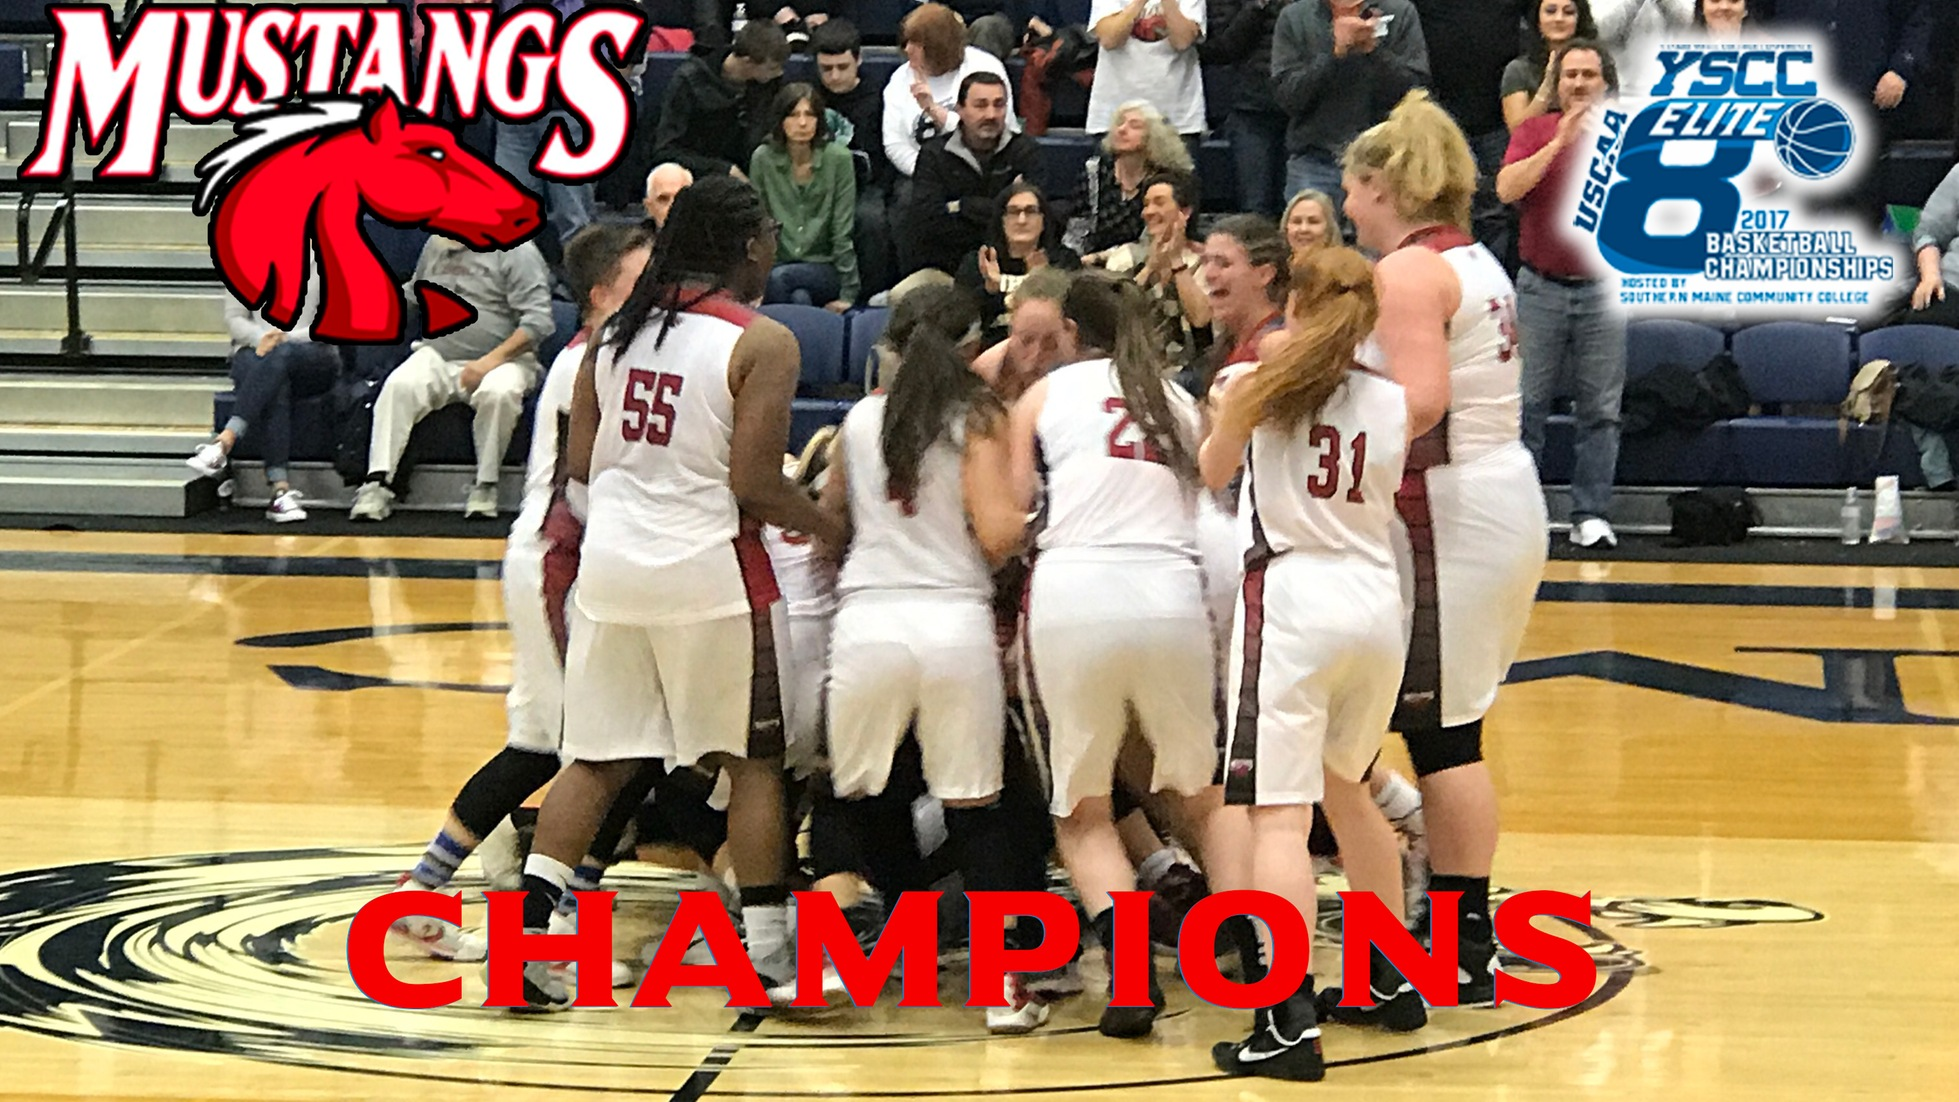 Lady Mustangs take home YSCC championship